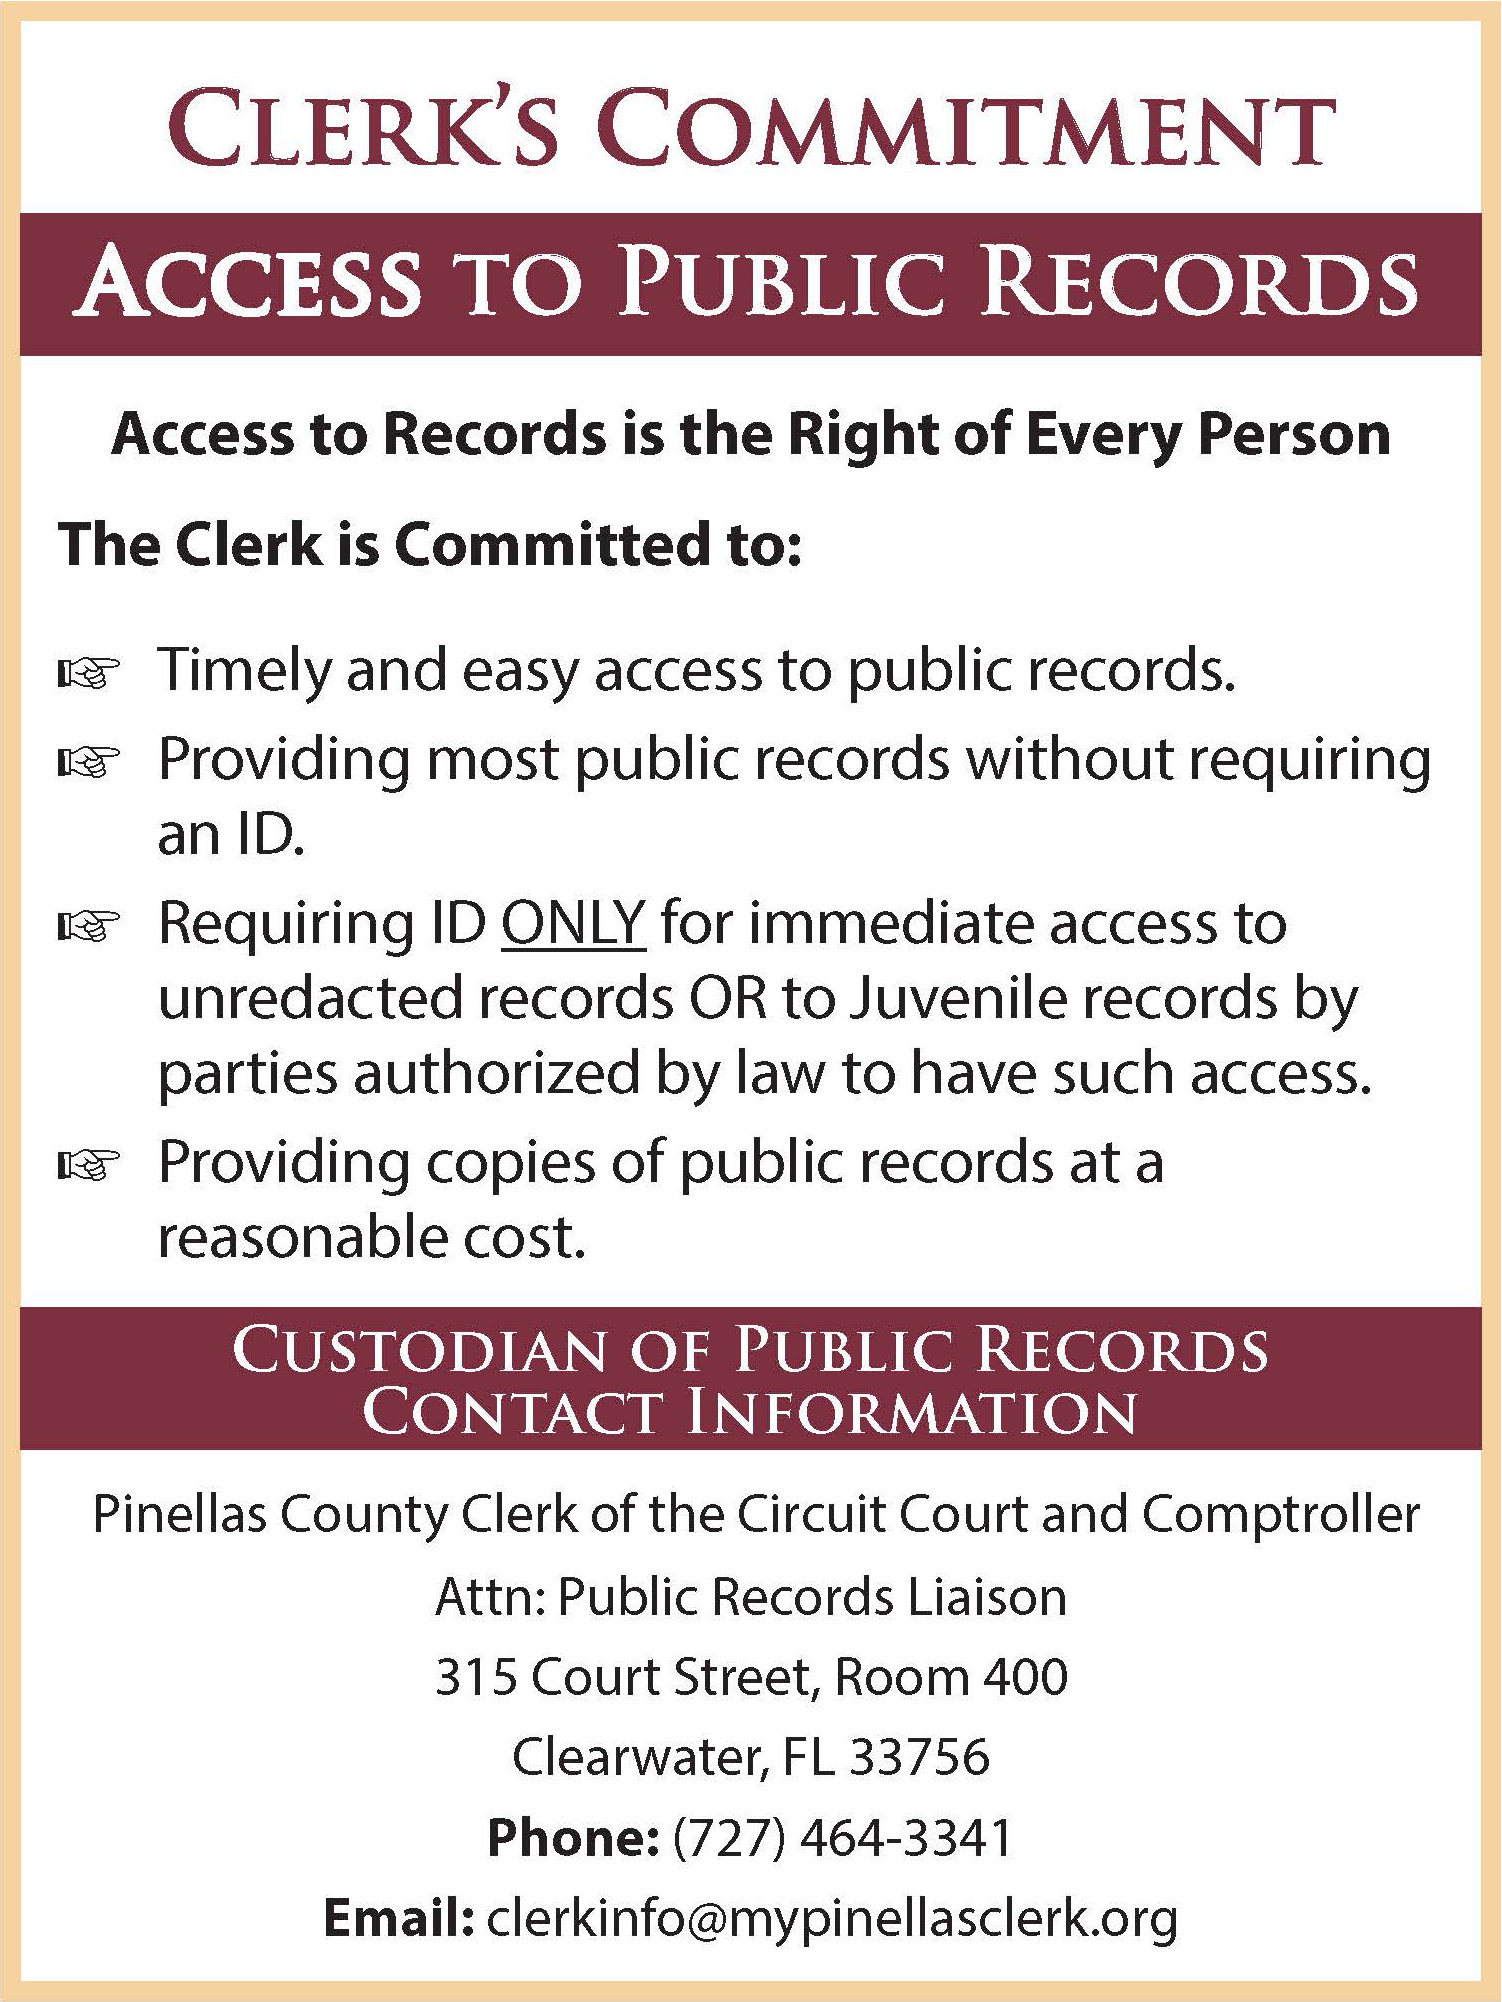 Pinellas County, FL - Clerk of the Circuit Court